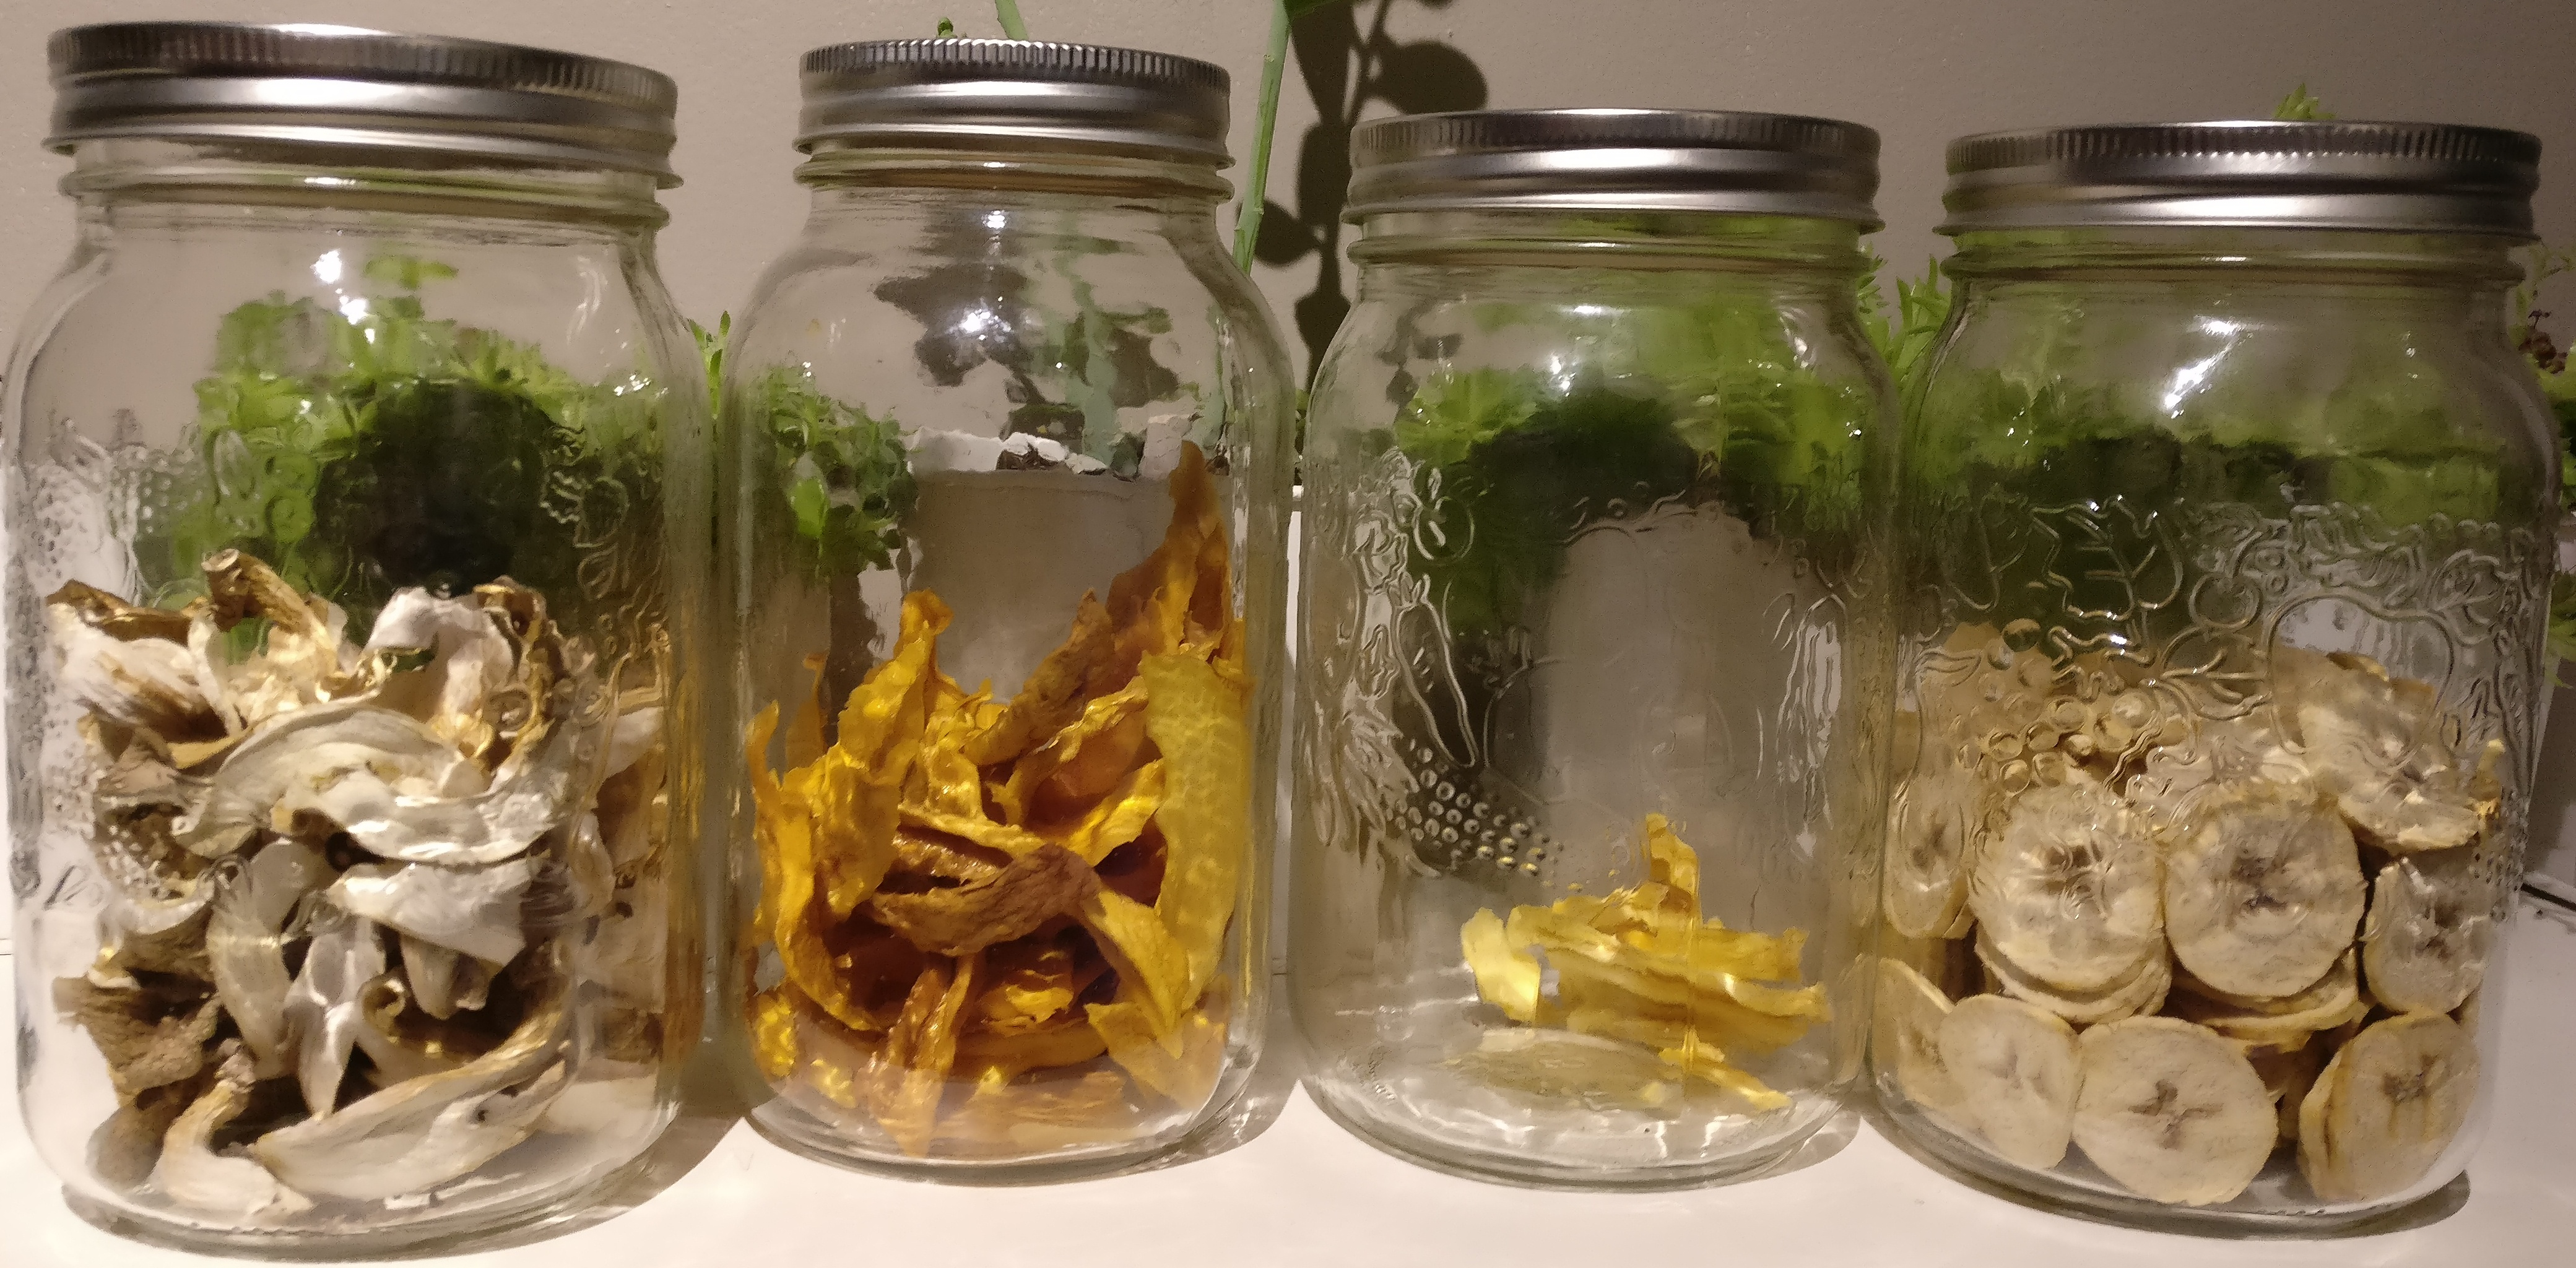 All stored in mason jars